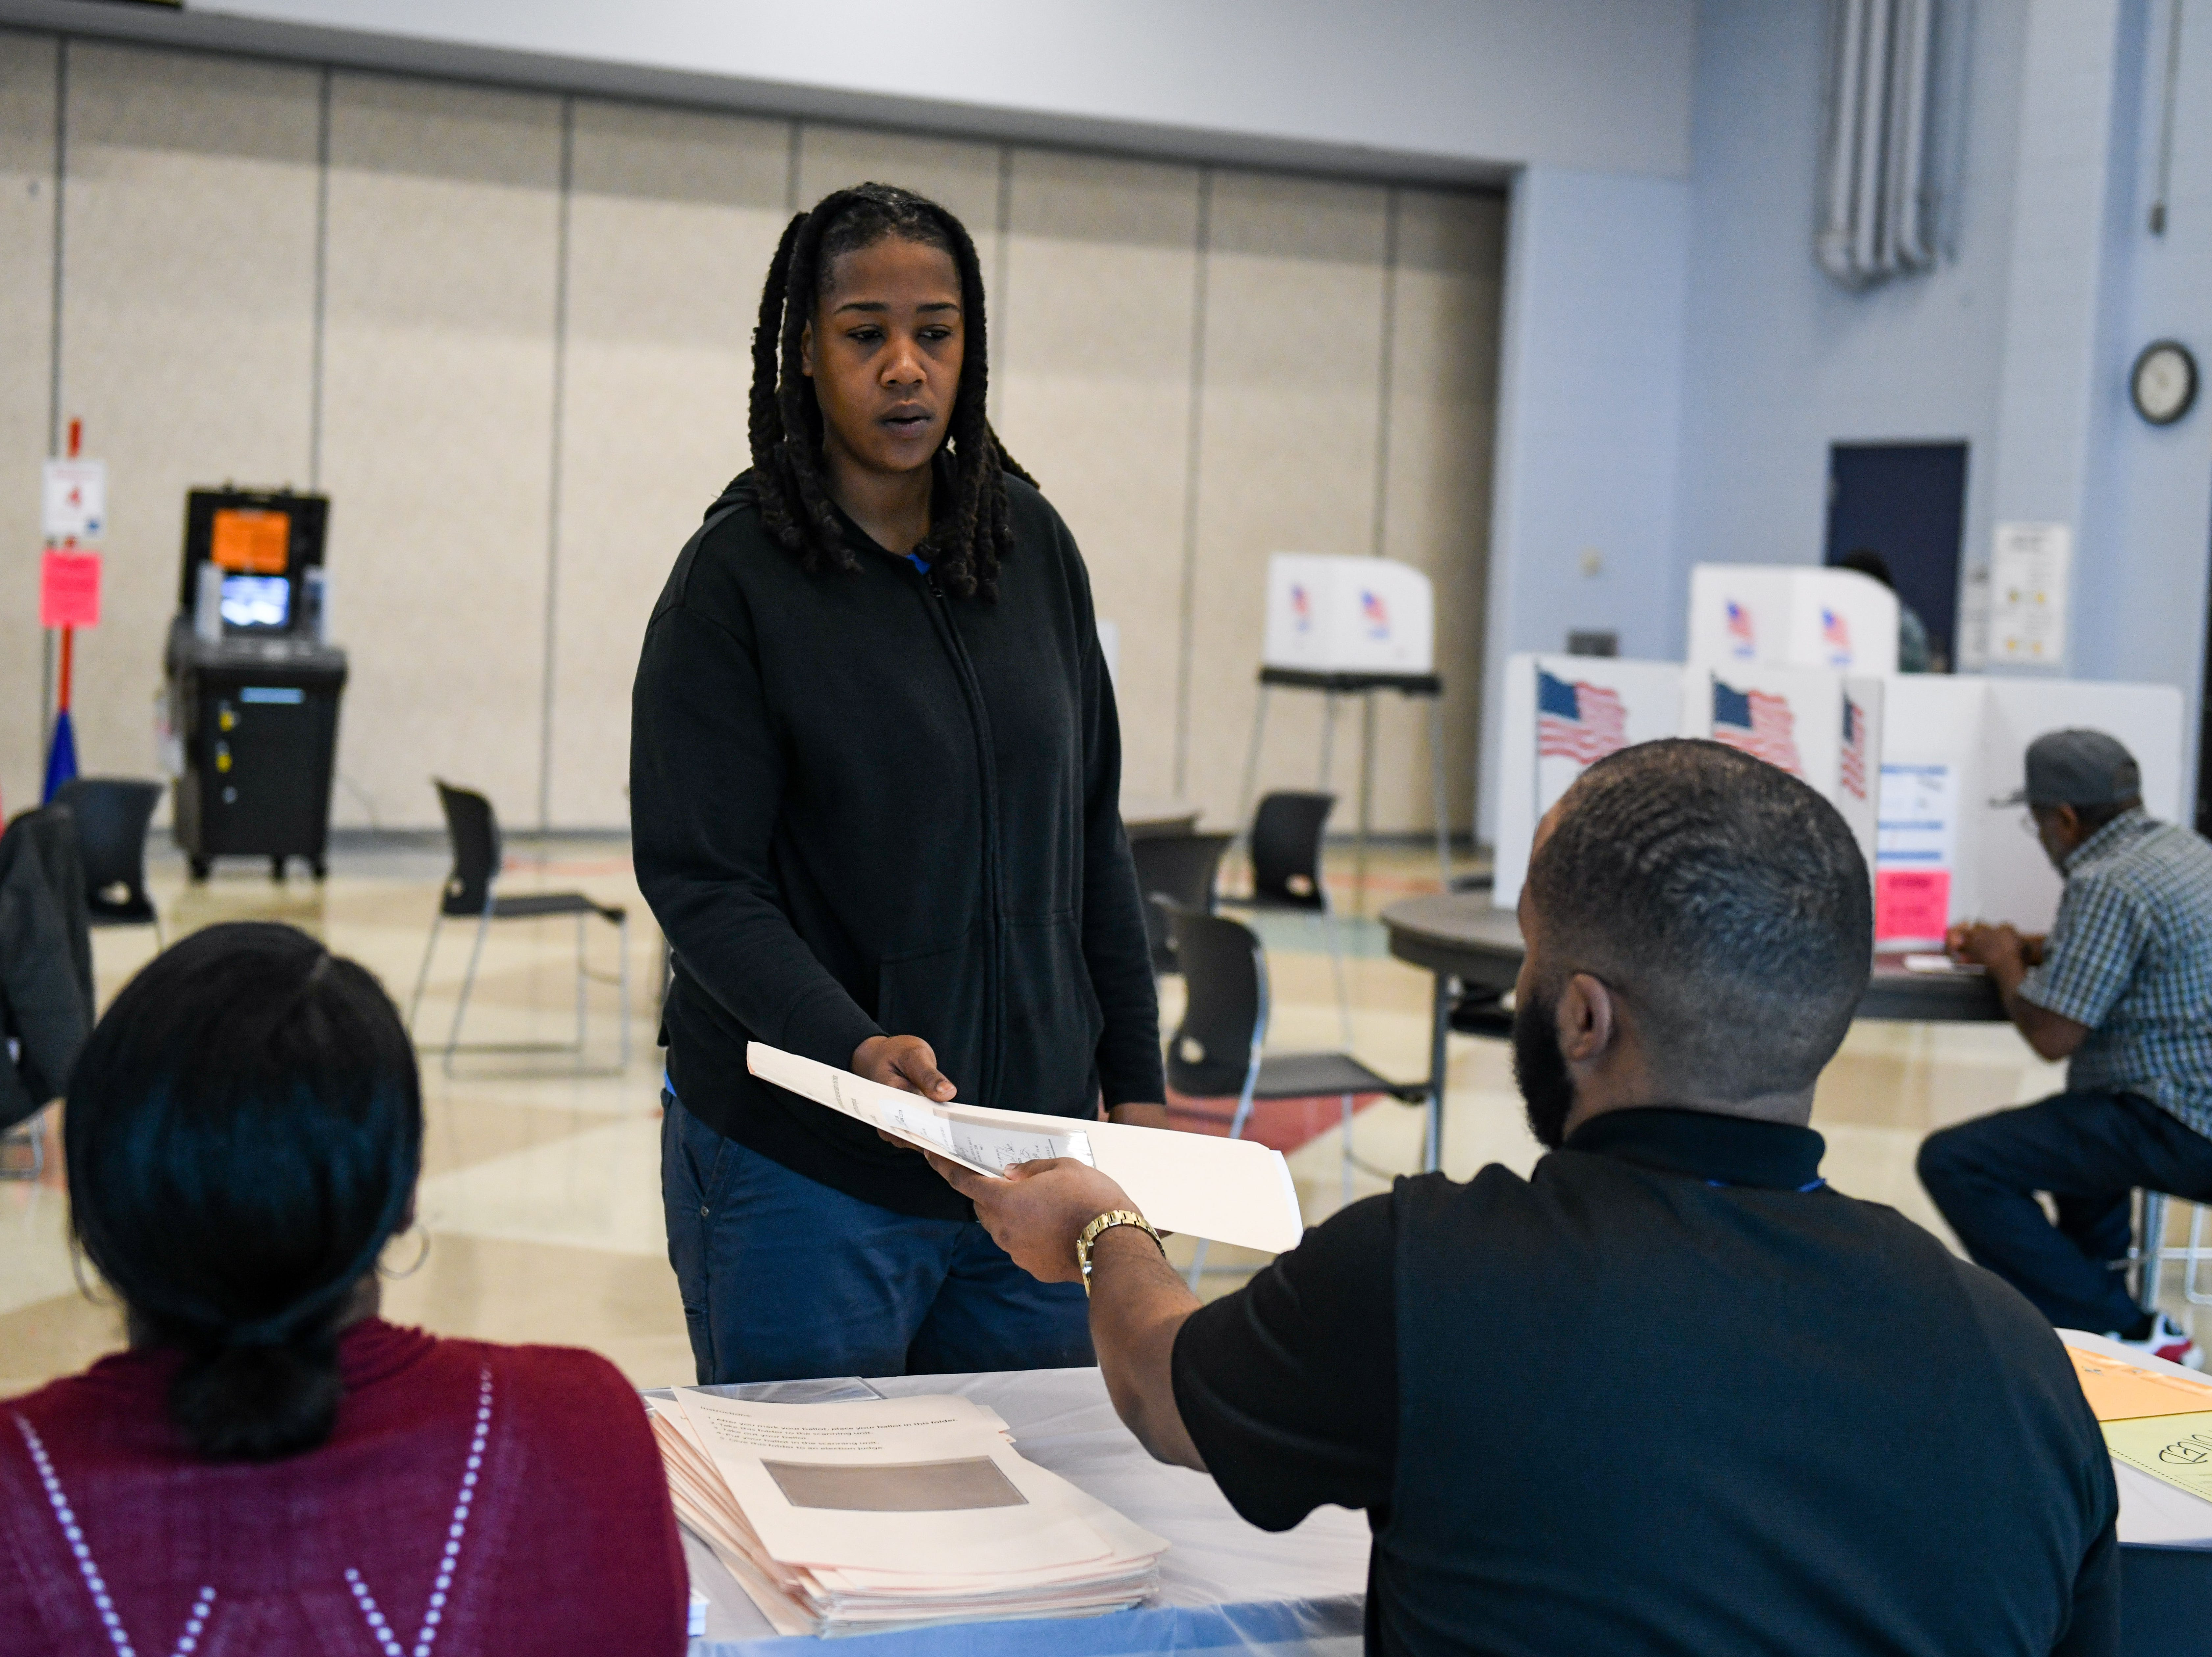 April Gibson gets a midterm election ballot at North Salisbury Elementary School on Tuesday, Nov 6, 2018.